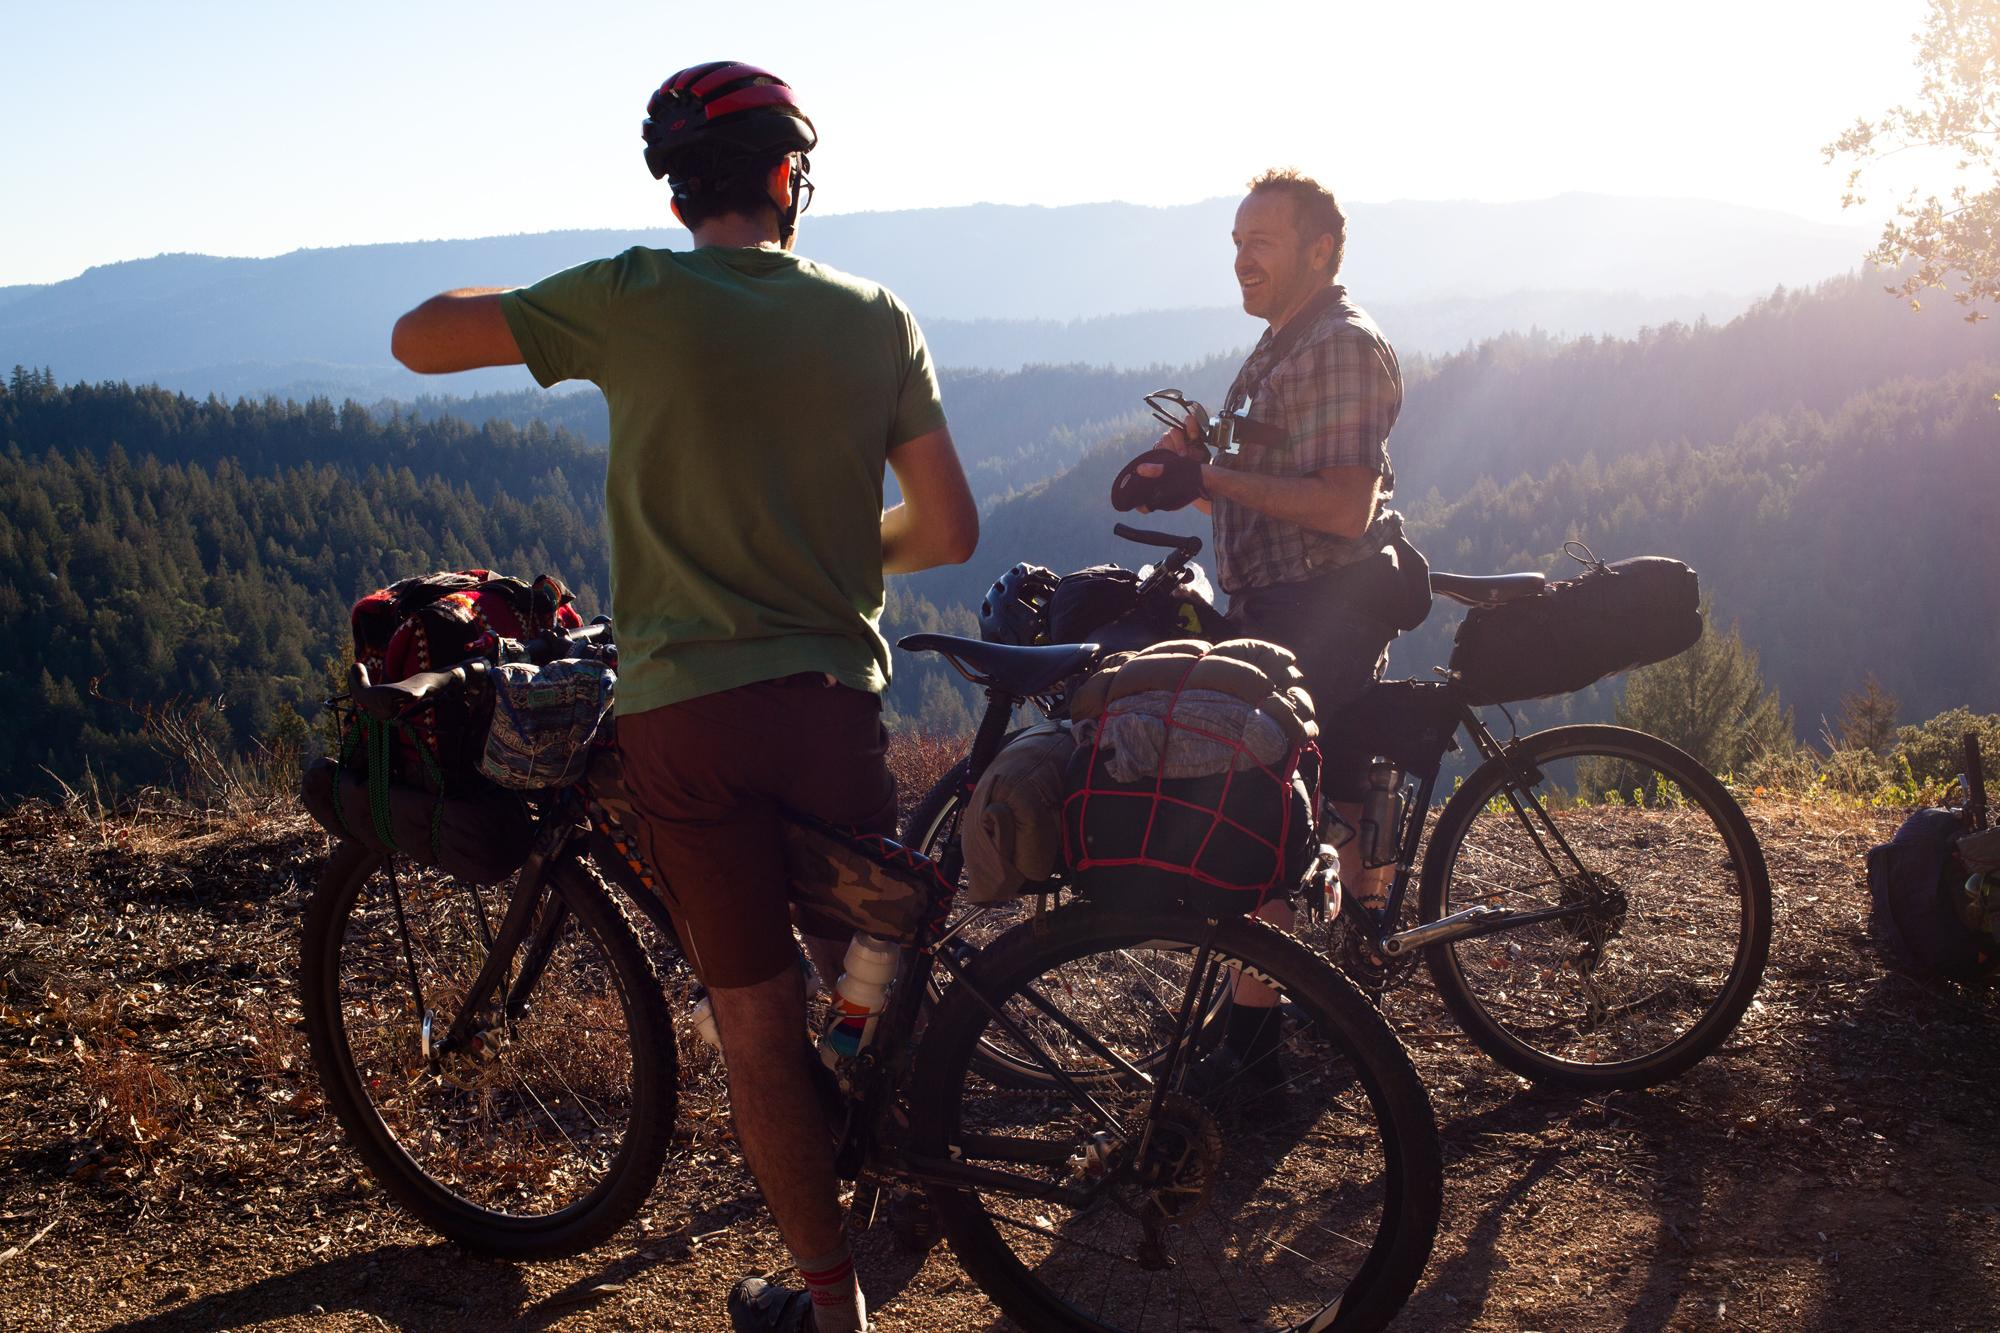 Bikepacking with BMXers on Cross Bikes in the Santa Cruz Mountains